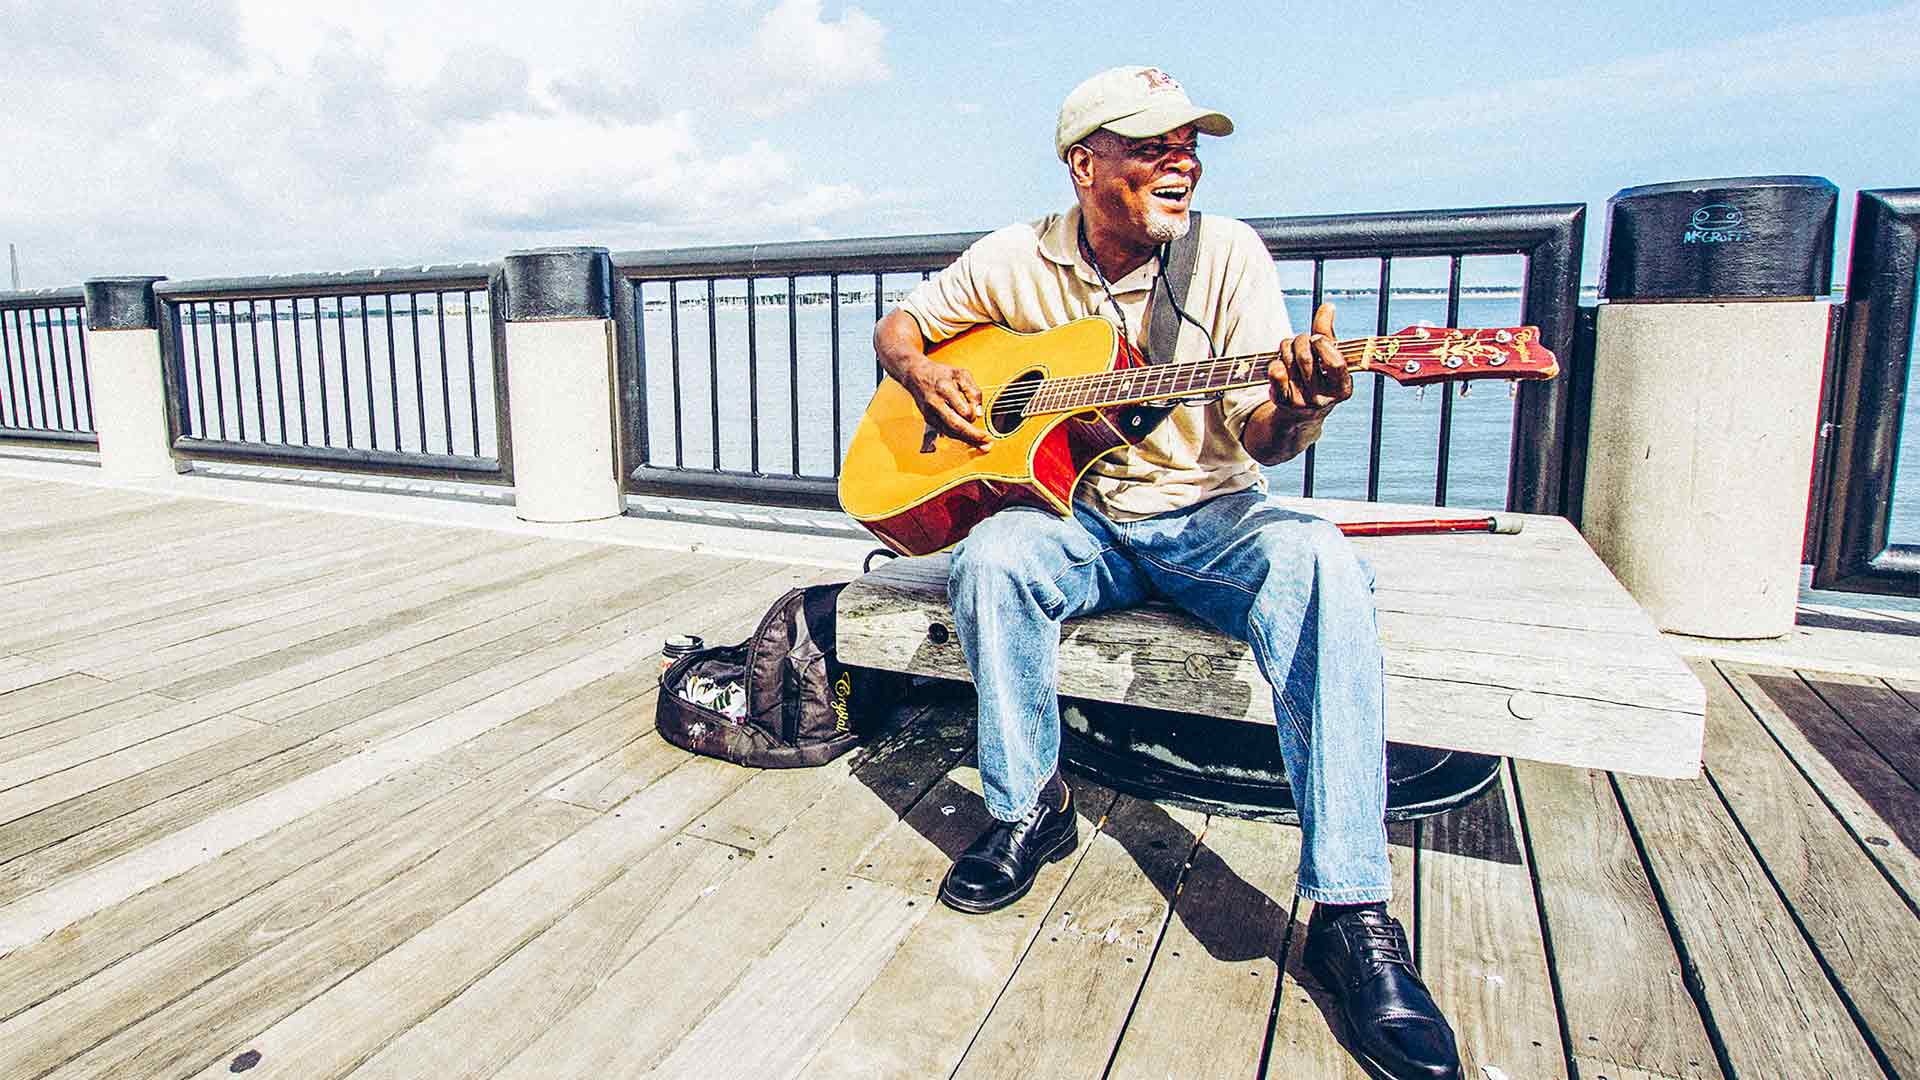 Charleston's waterfront park attracts musicians